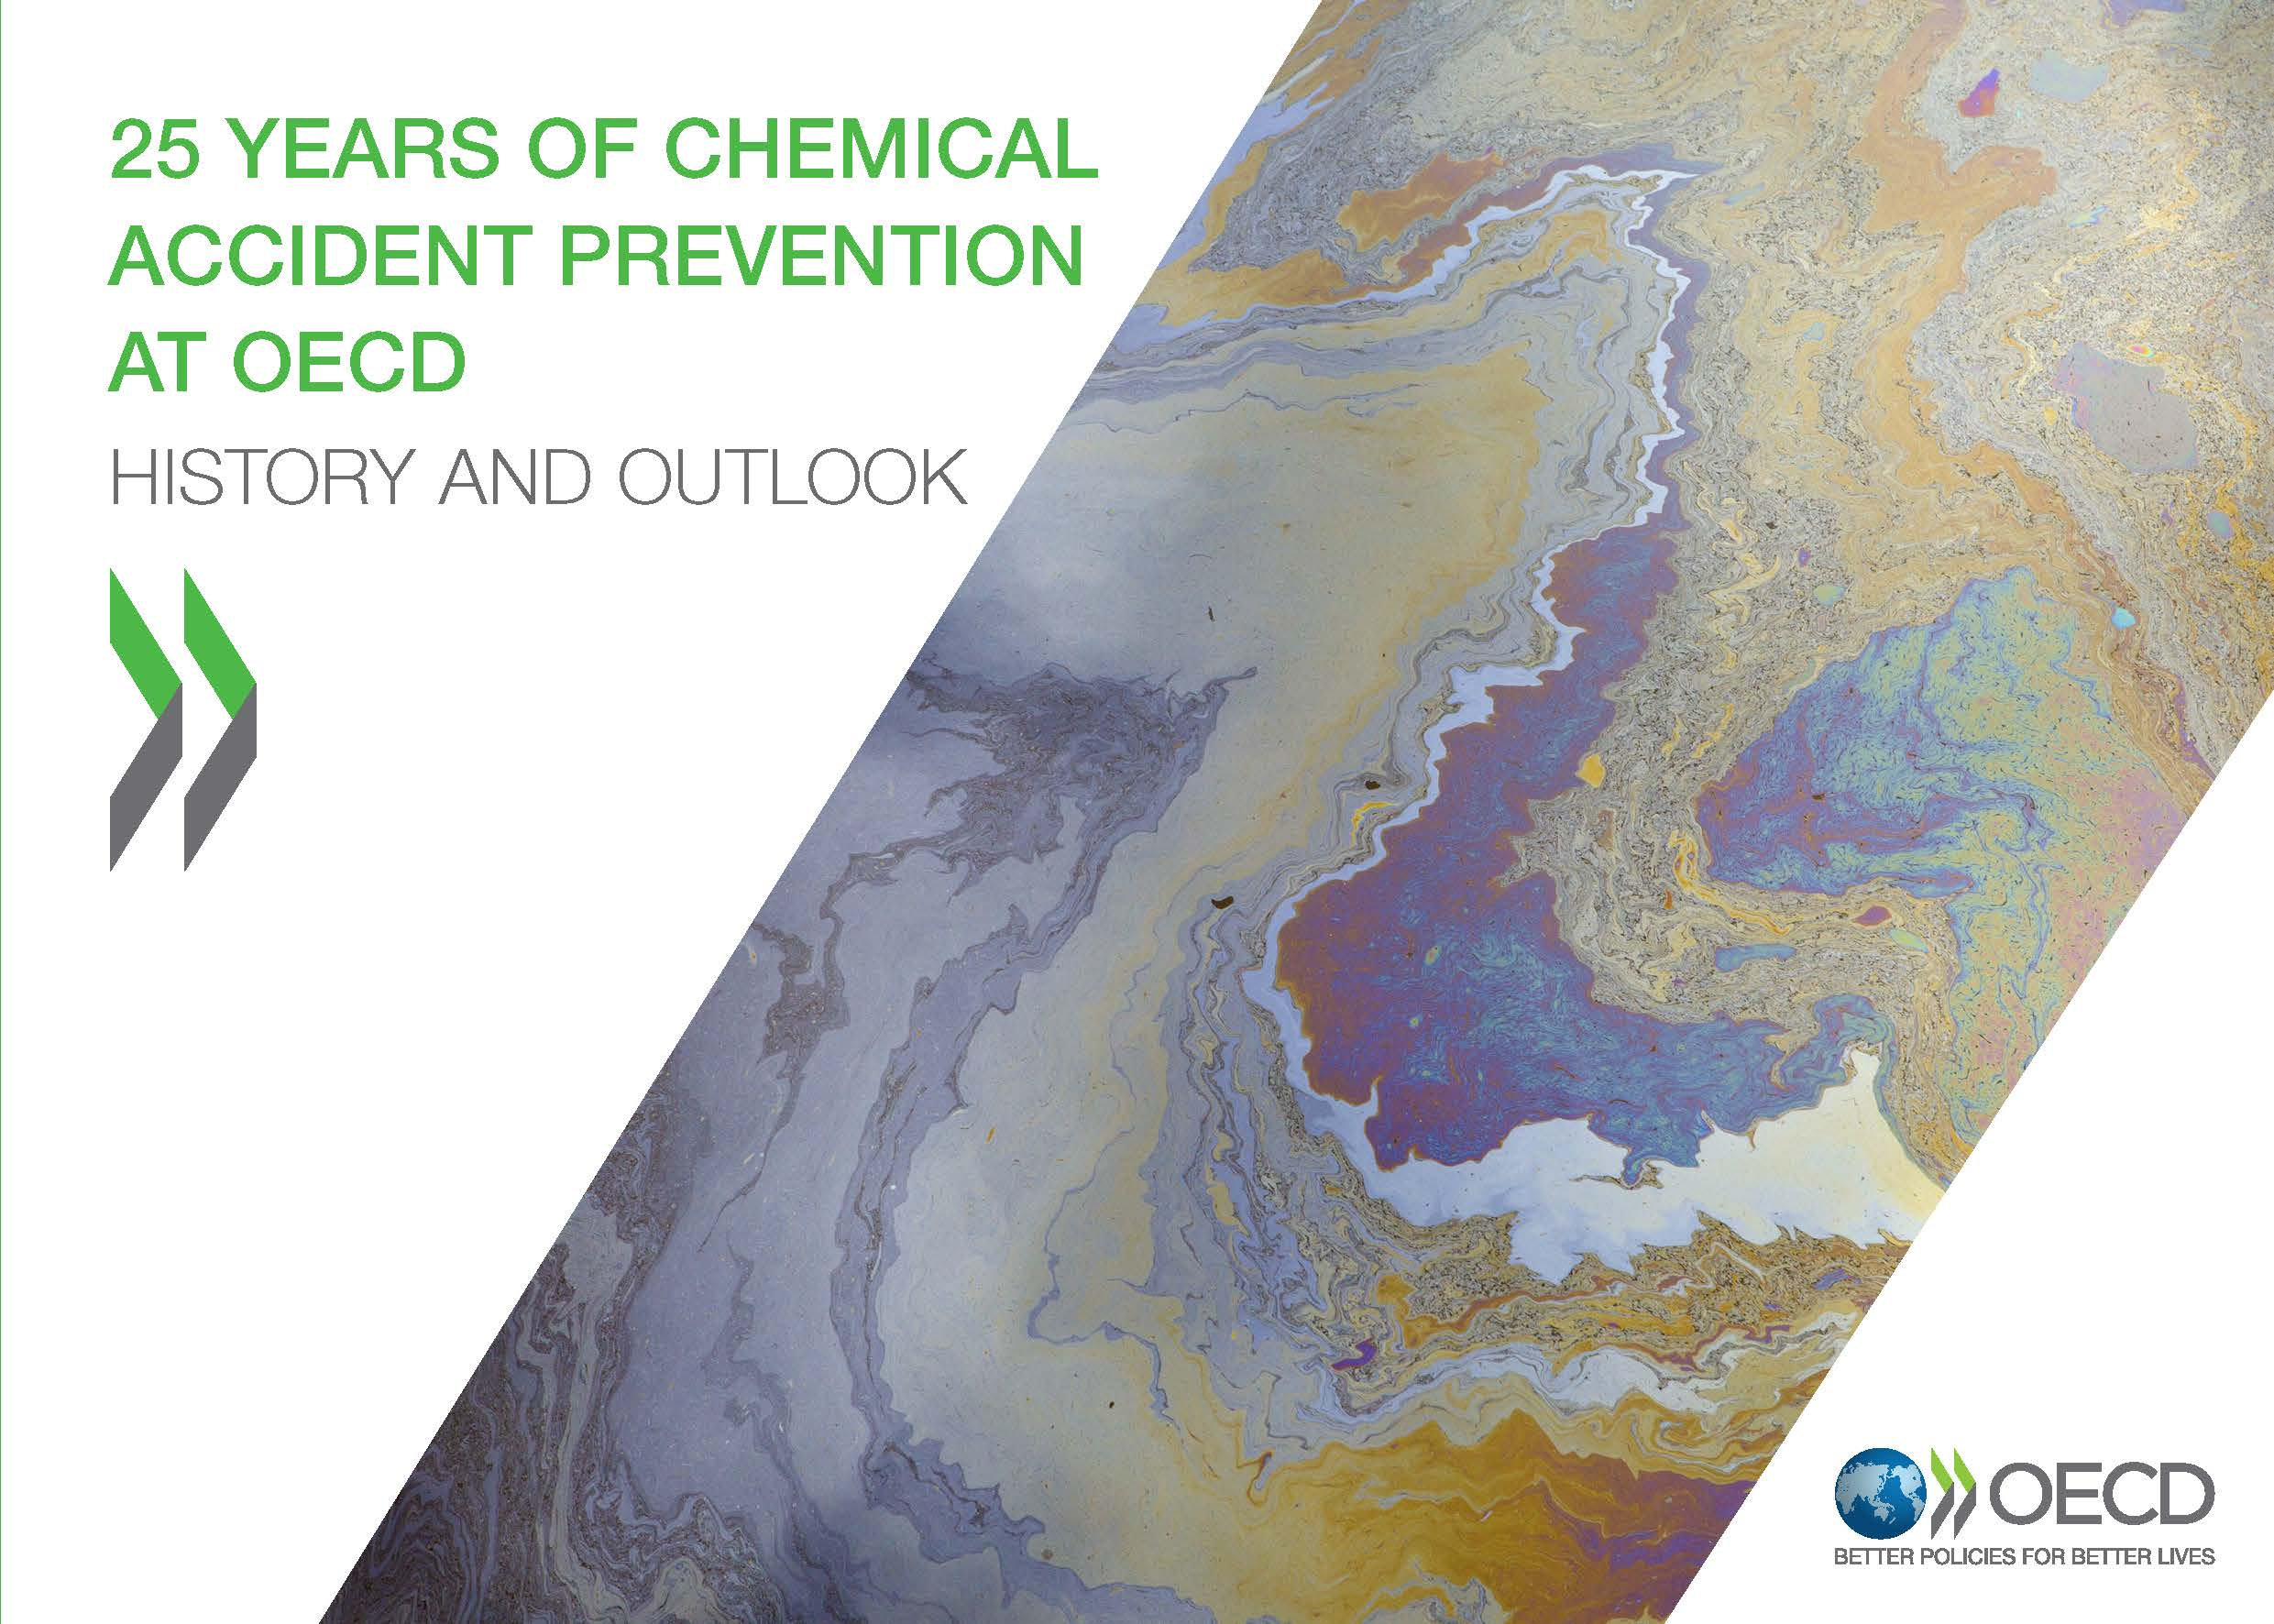 Cover page of the 25 years of chemical accident prevention at OECD image